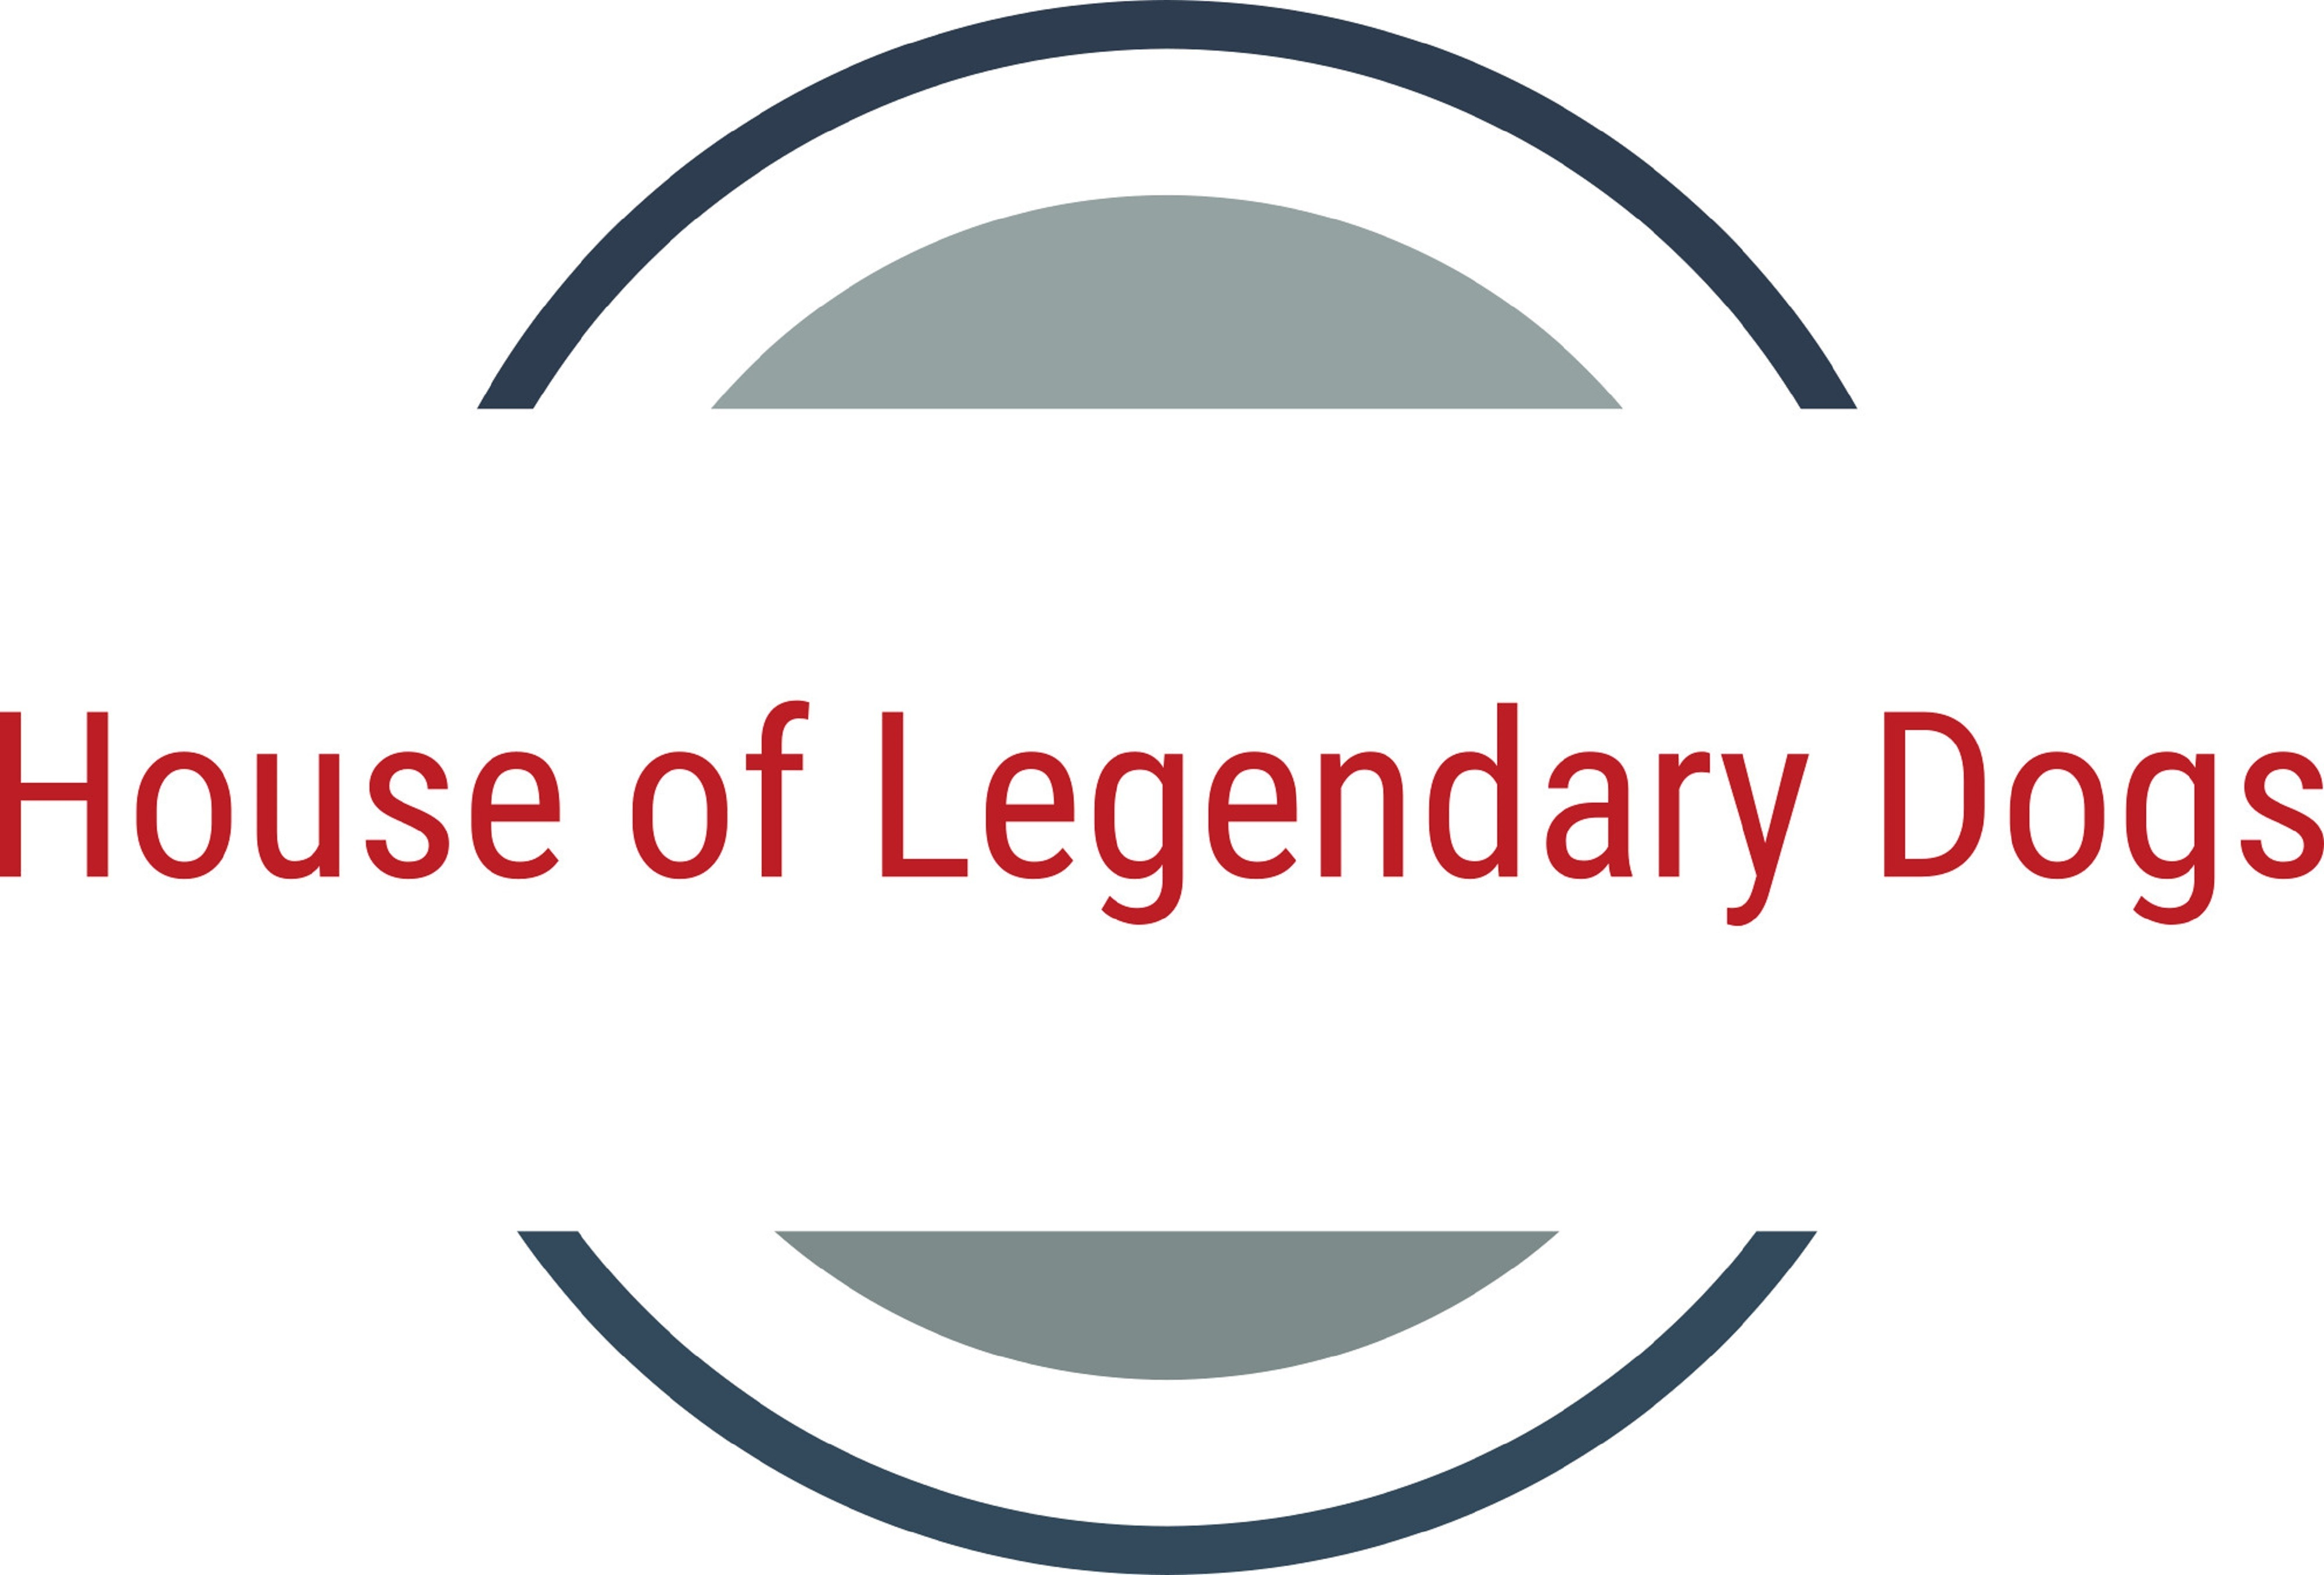 House of Legendary Dogs